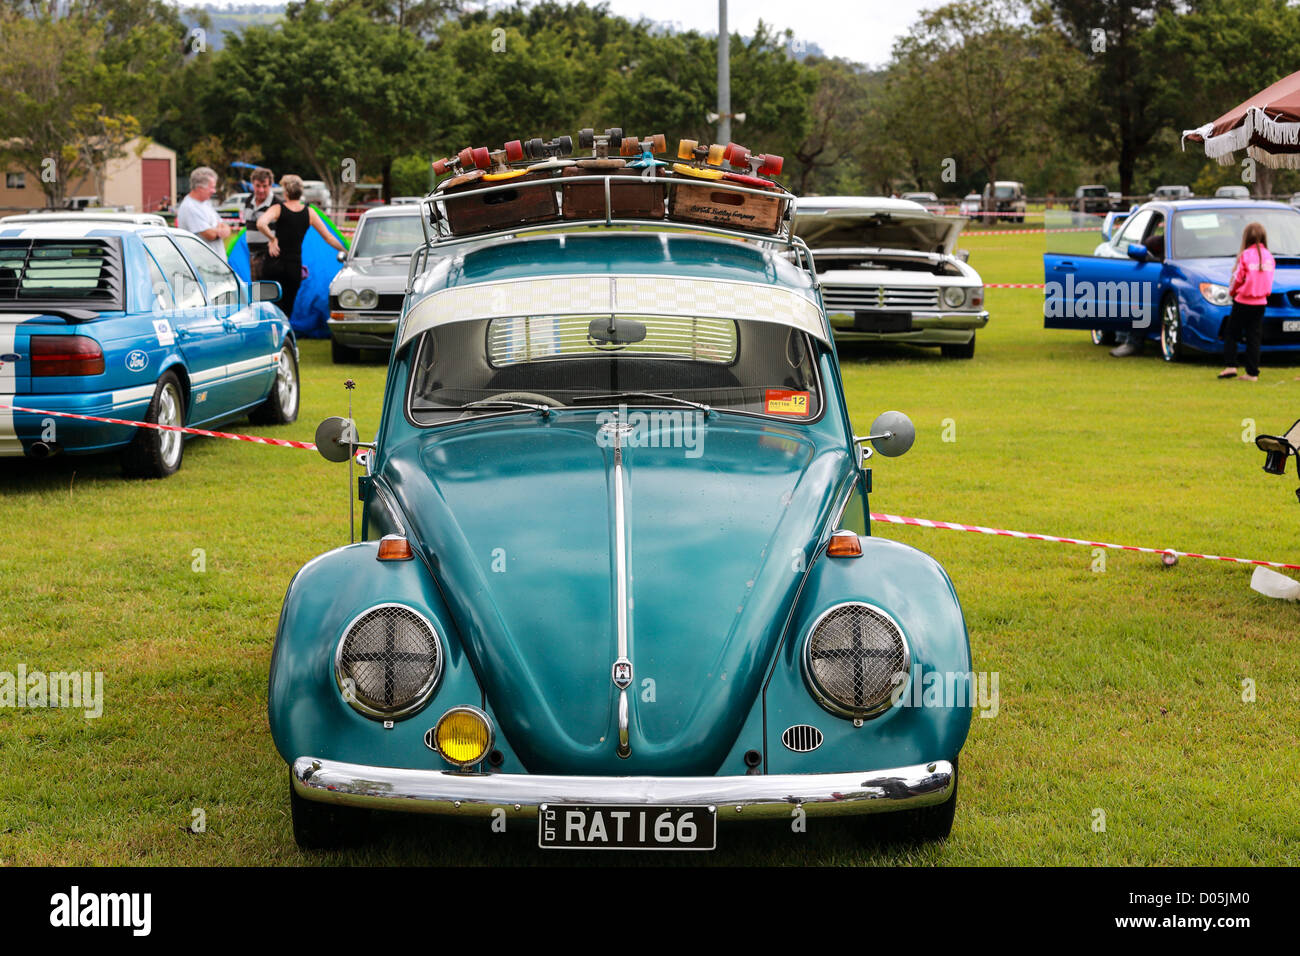 Early 60s' VW on display known as the beetle a classic car has a wide following at the Gold Coast Car Show - Stock Image